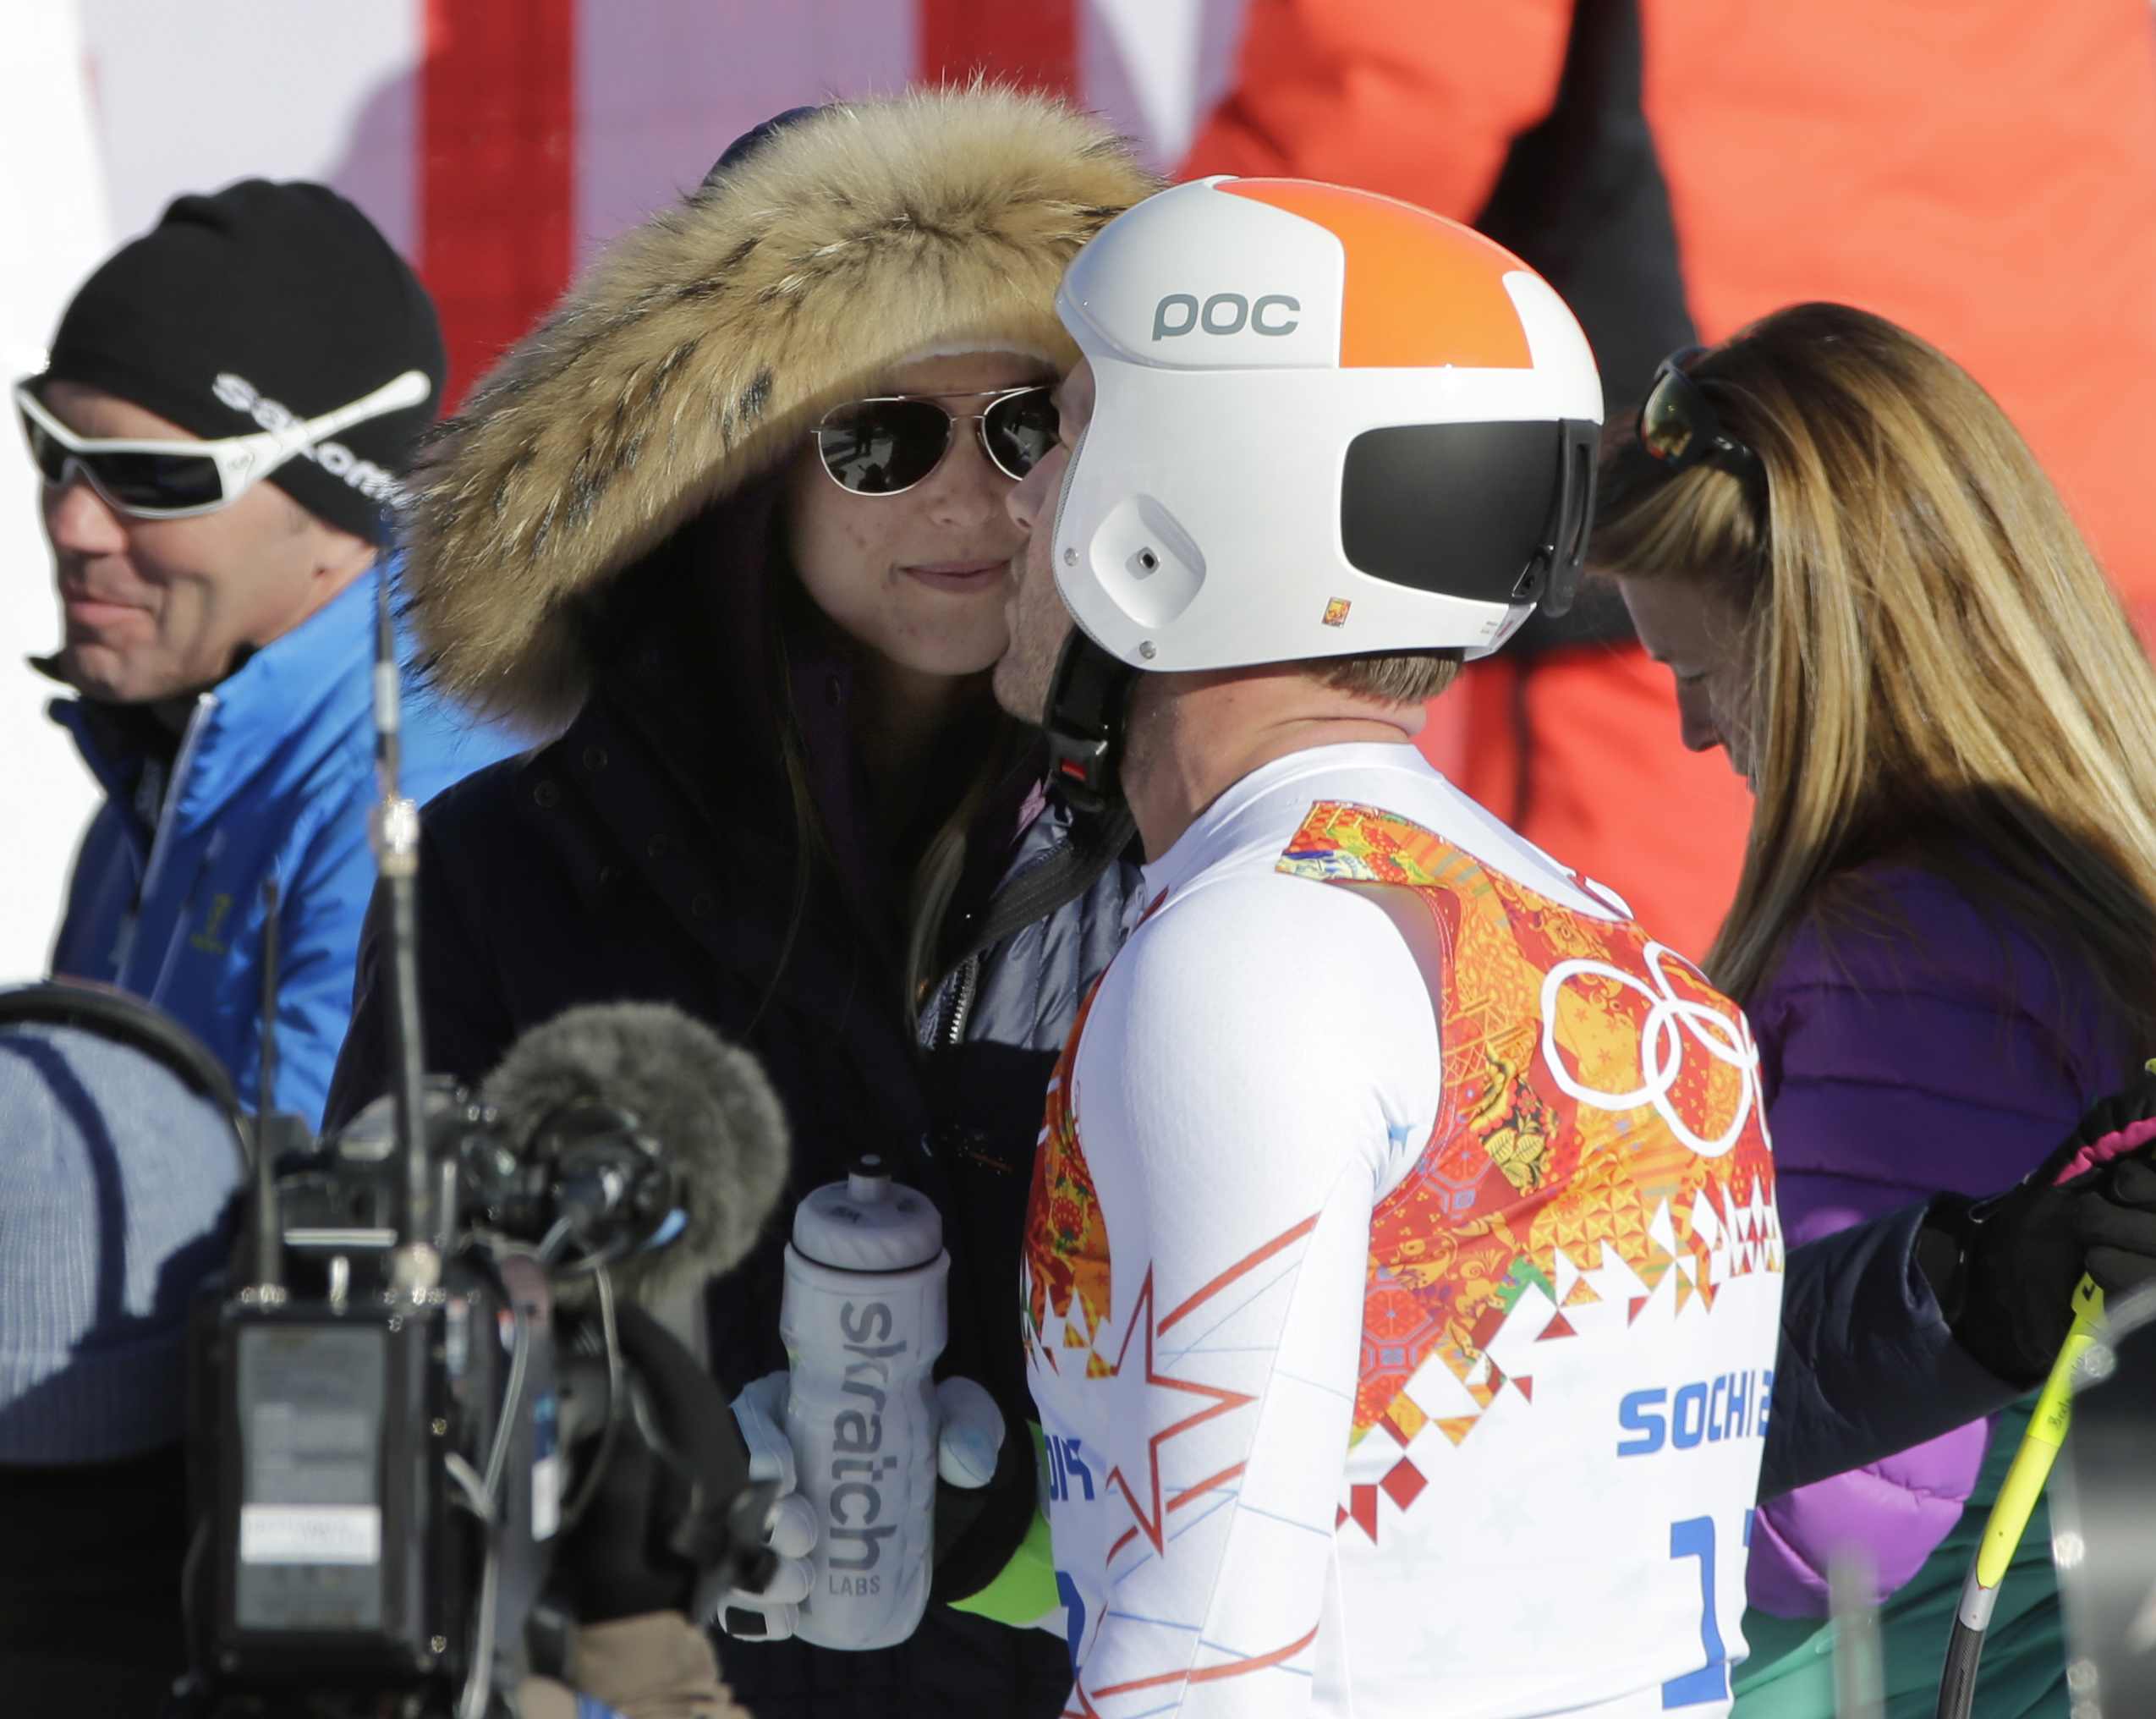 United States' Bode Miller leans in to kiss his wife, morgan, after a men's downhill training run for the Sochi 2014 Winter Olympics, Saturday, Feb. 8, 2014, in Krasnaya Polyana, Russia. (AP Photo/Gero Breloer)